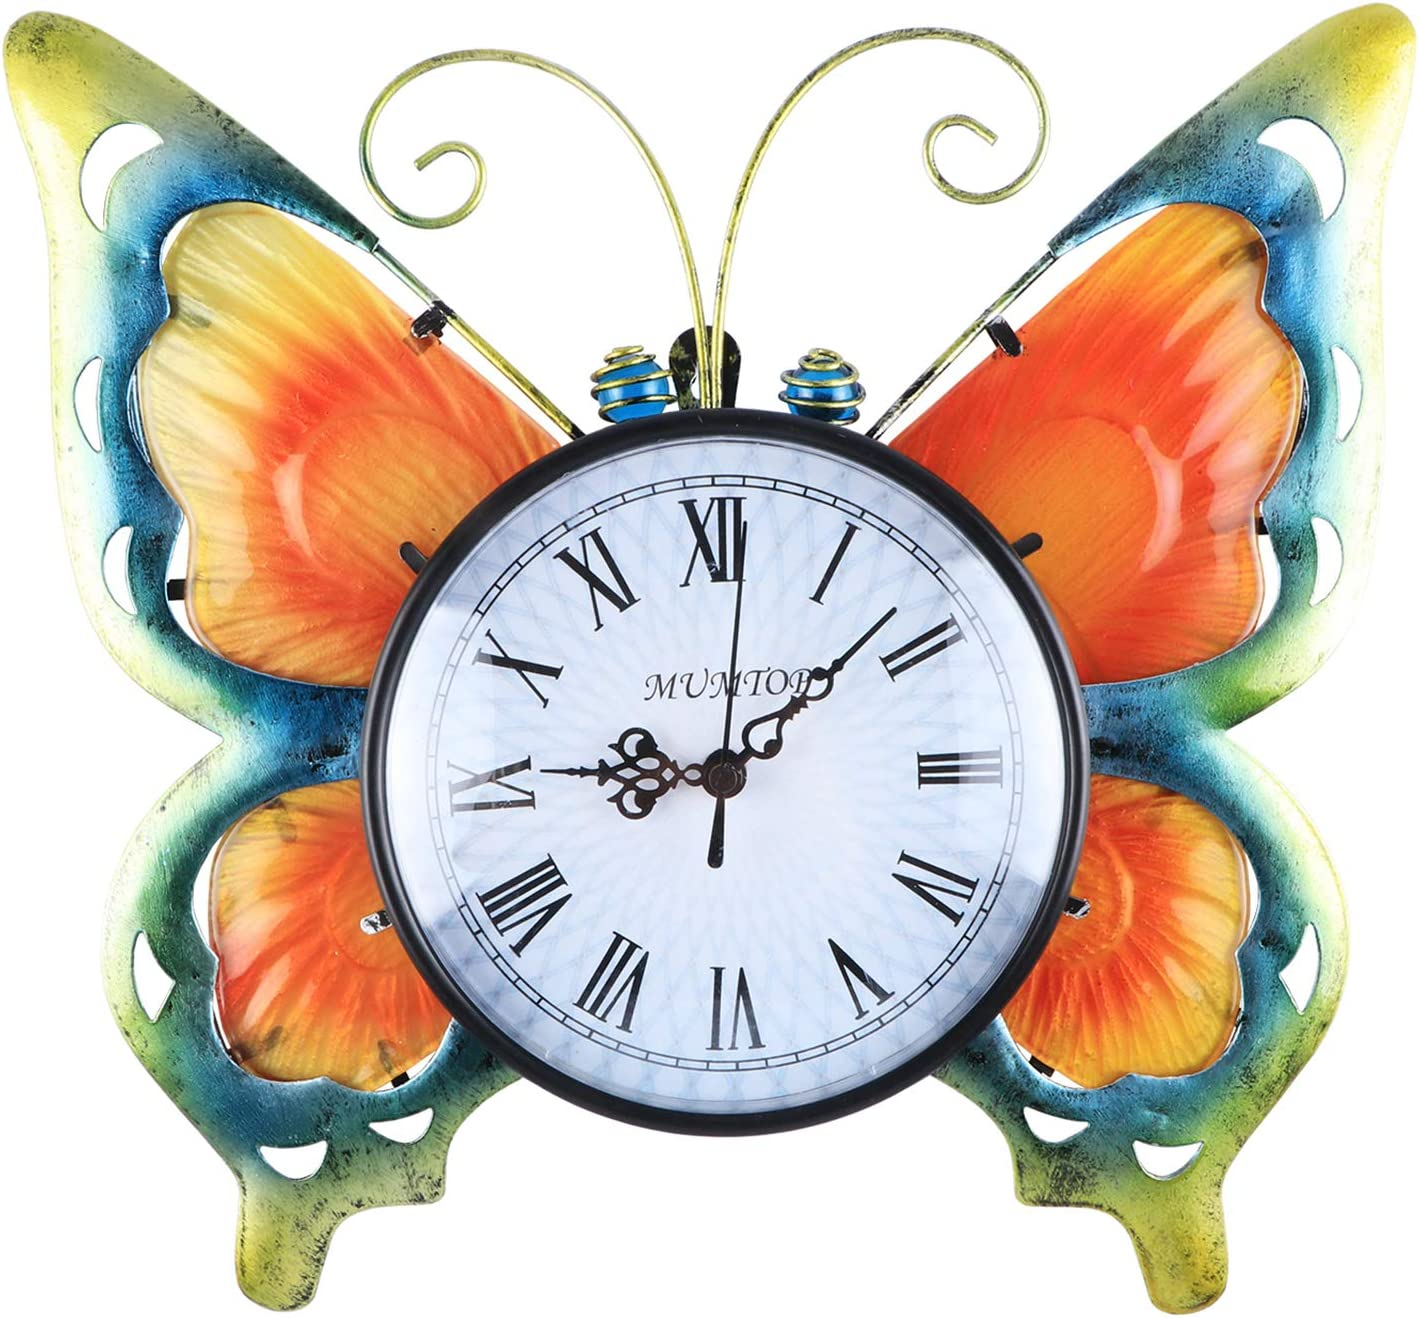 WONDER GARDEN Butterfly Wall Clock, Vintage Retro Time Clock Large Battery Operated Wall Clocks for Living Room Decor